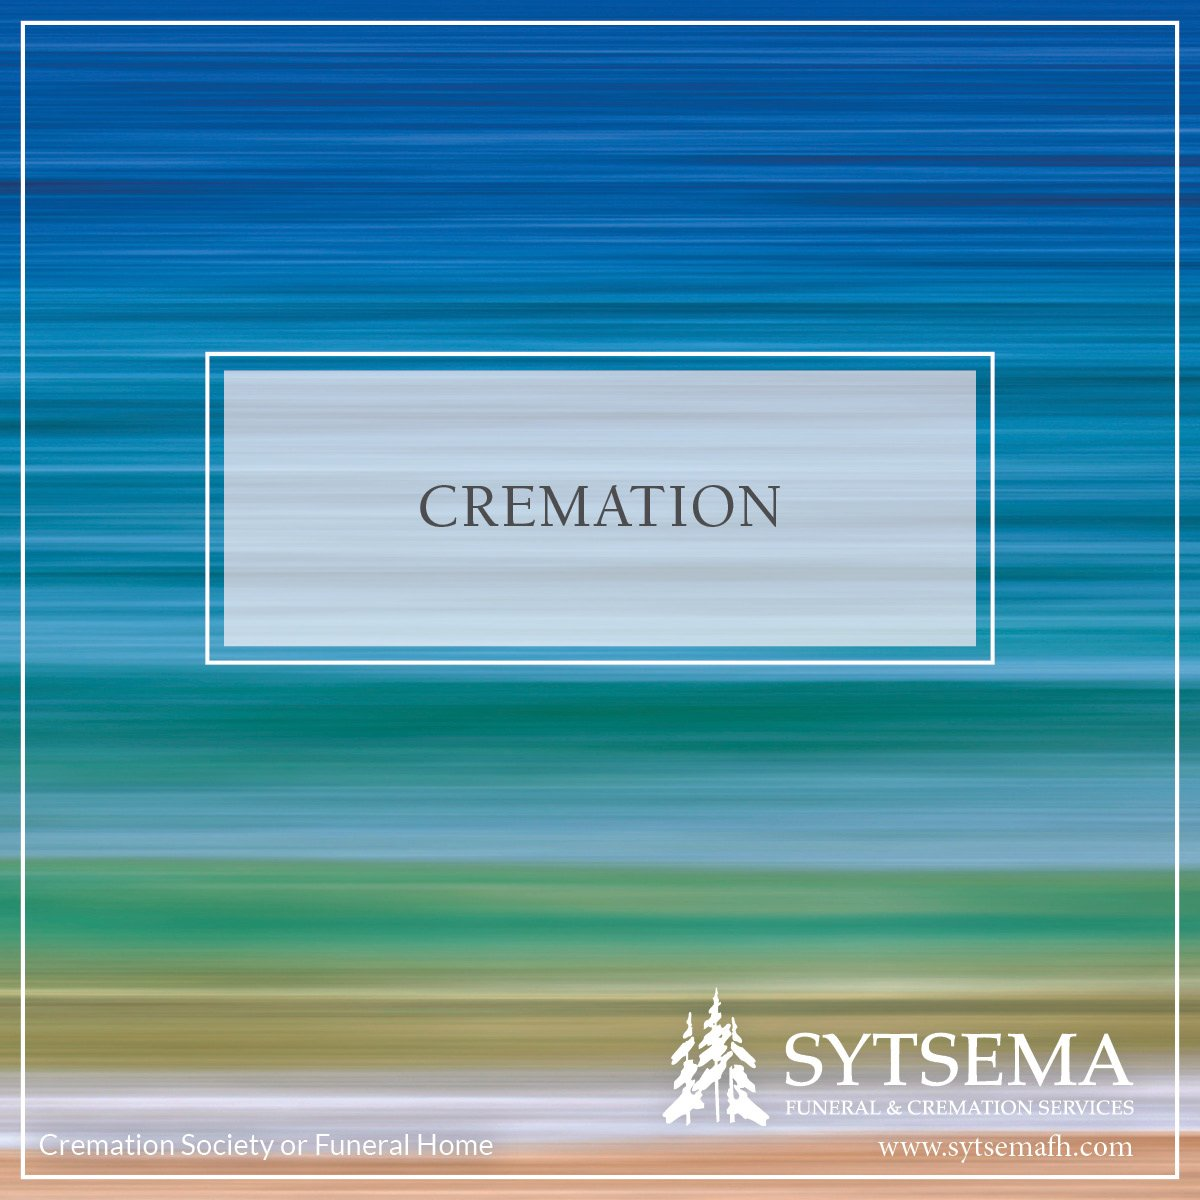 Cremation Society or Funeral Home